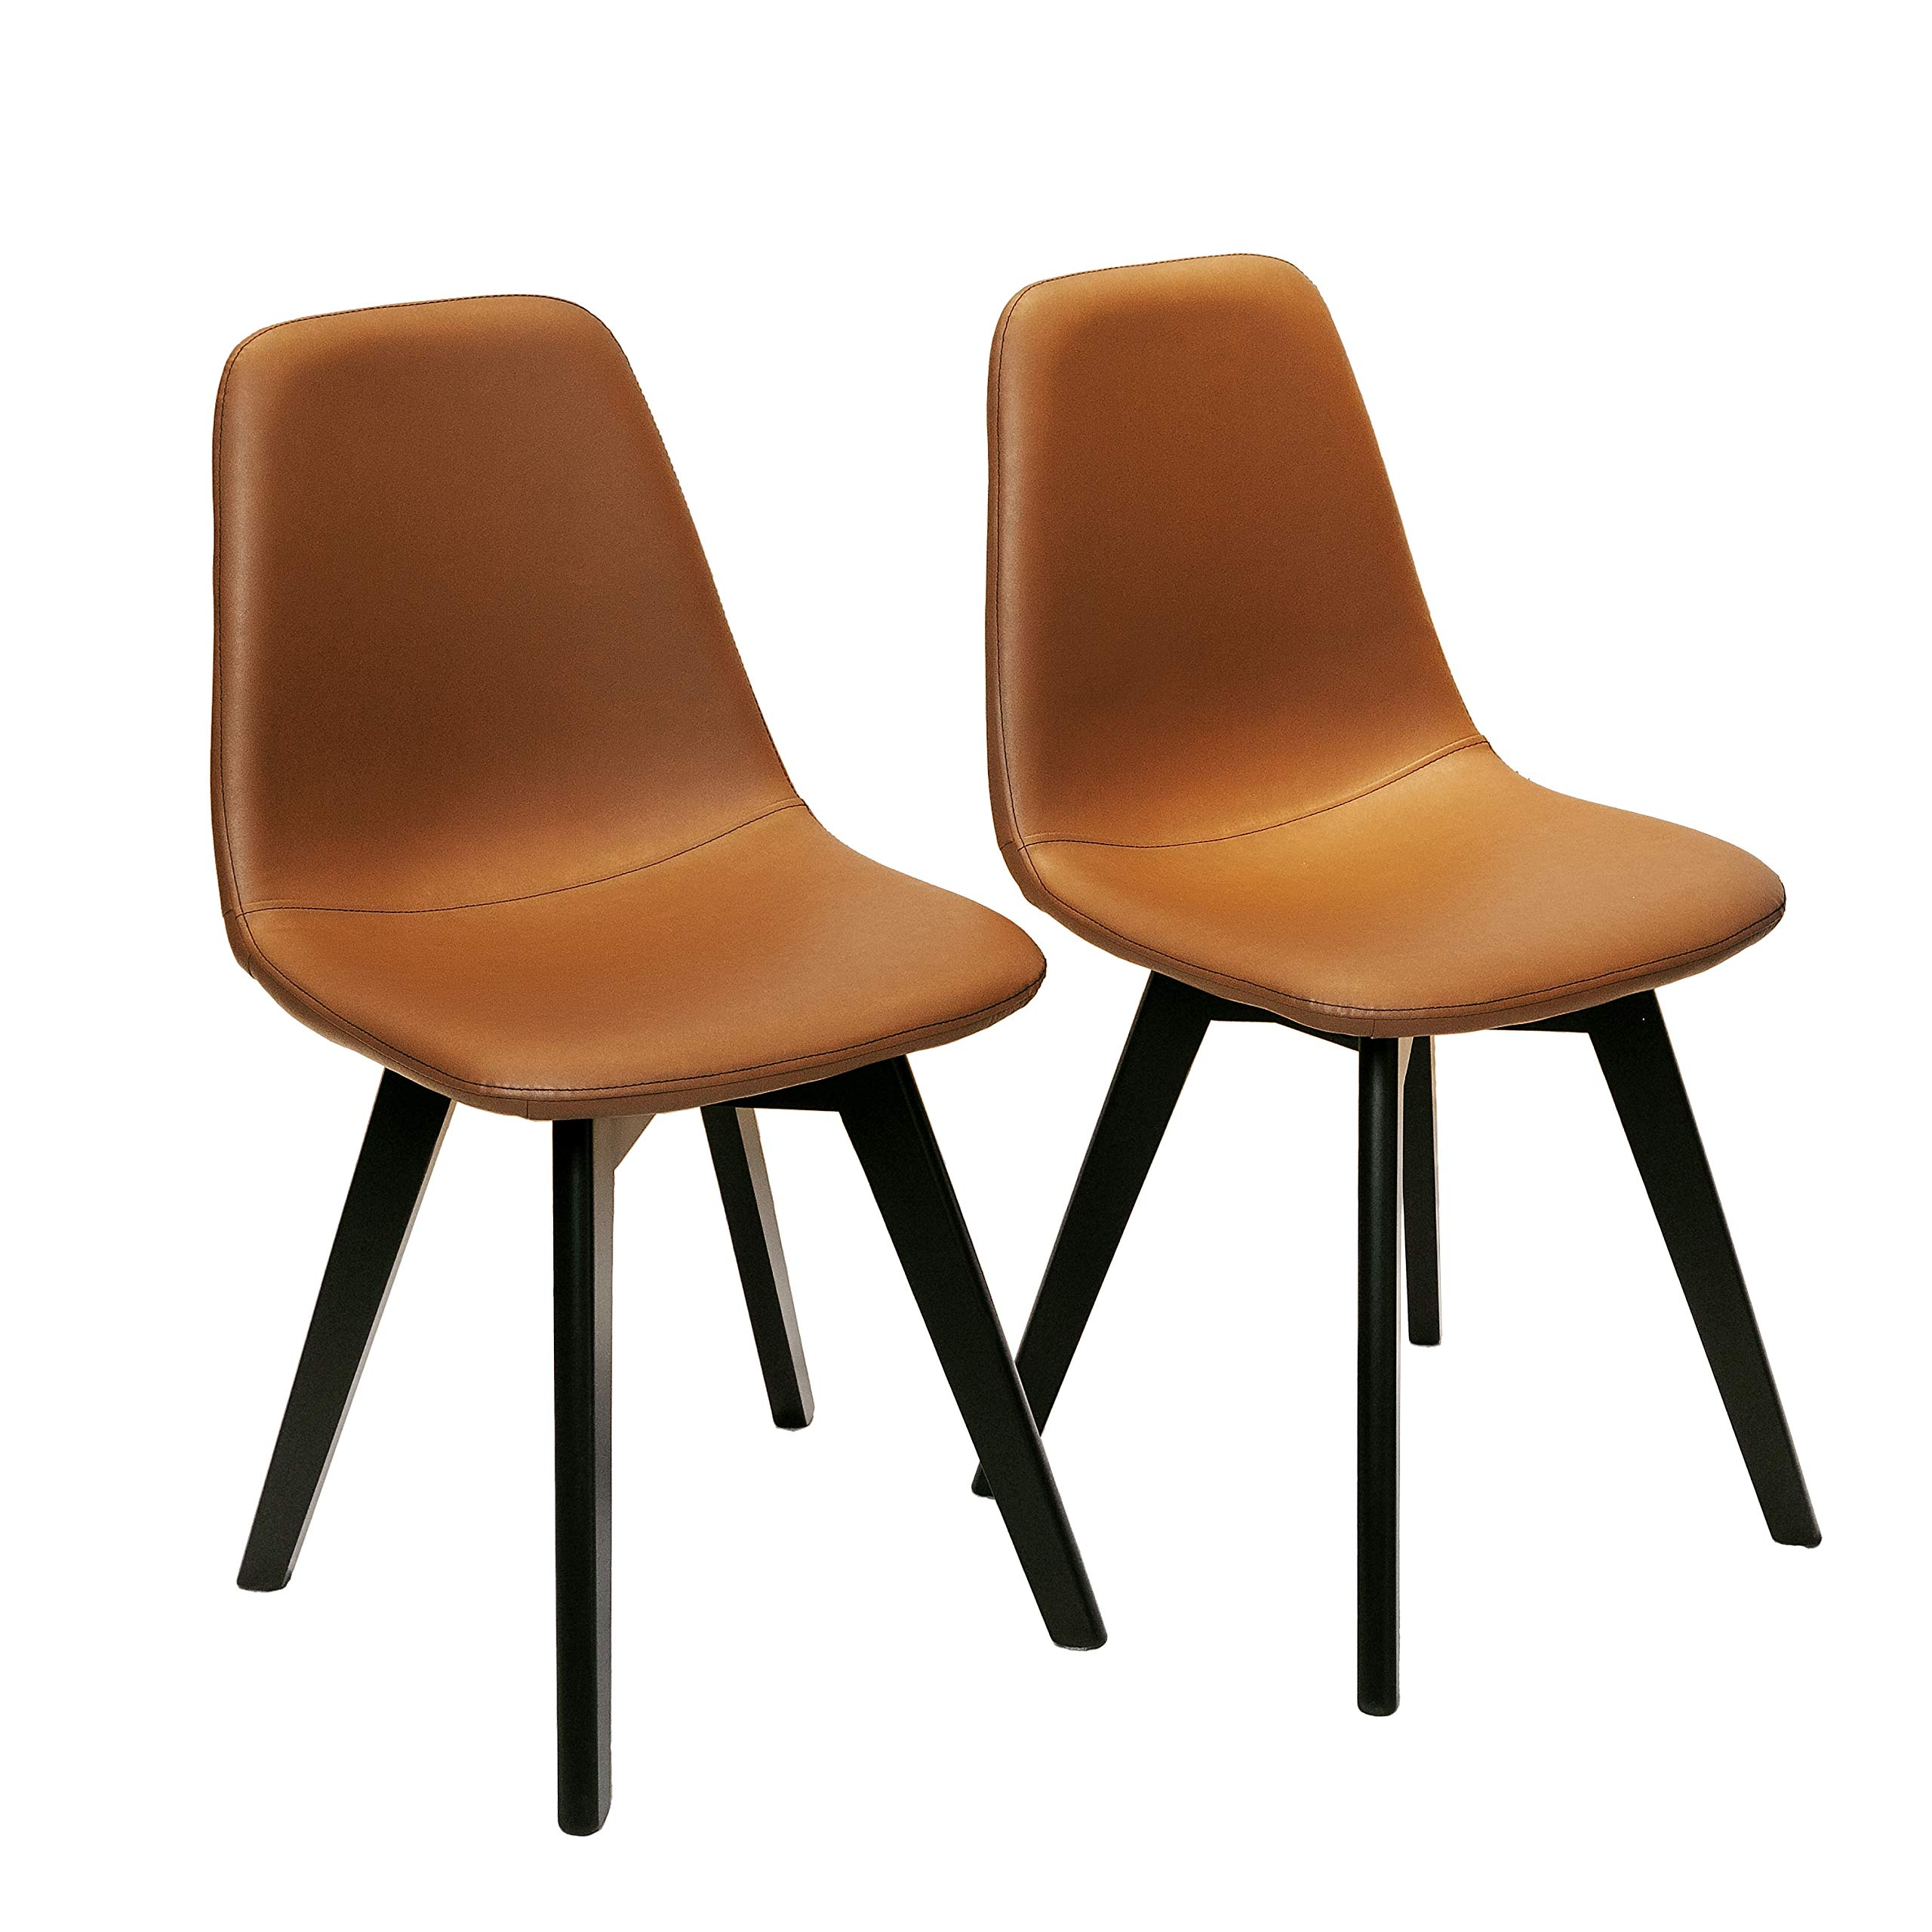 FUNCASH Dining Chairs Set of 2, Dining Room Chair Washable Brown PU Cushion Side Chairs with Sturdy Wooden Legs, Mid Century Modern Chairs for Kitchen, Dining, Bedroom, Living Room by FUNCASH